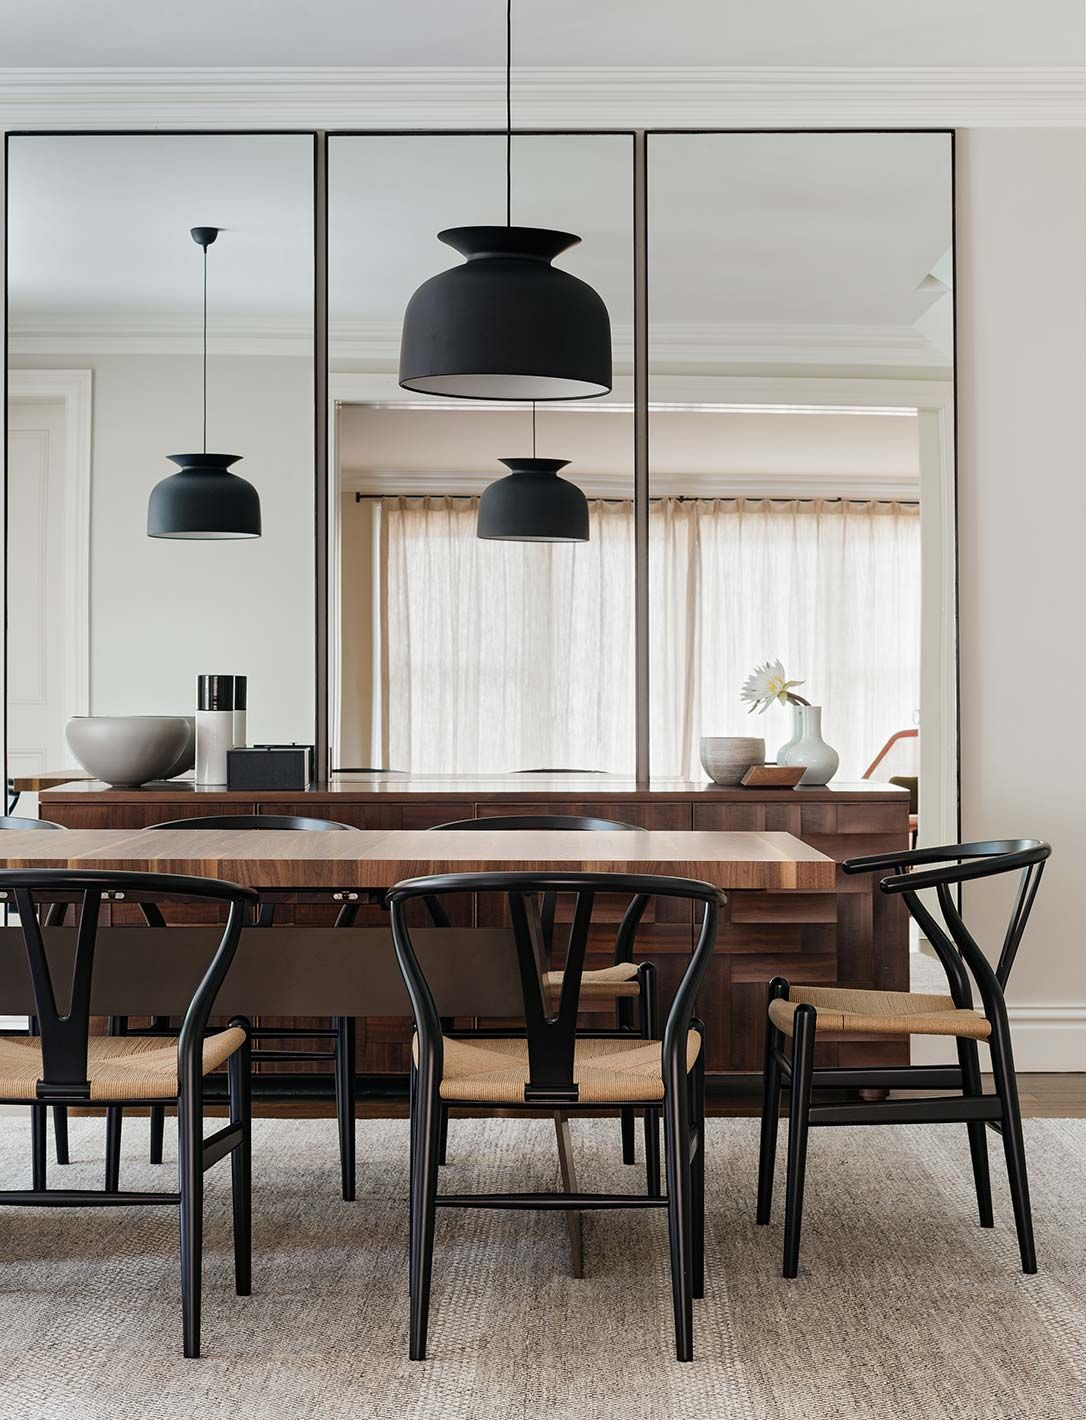 Dining Room With Black Wishbone Chairs And Gubi U0027rodeu0027 Pendant Light |  Figtree House By Arentu0026Pyke